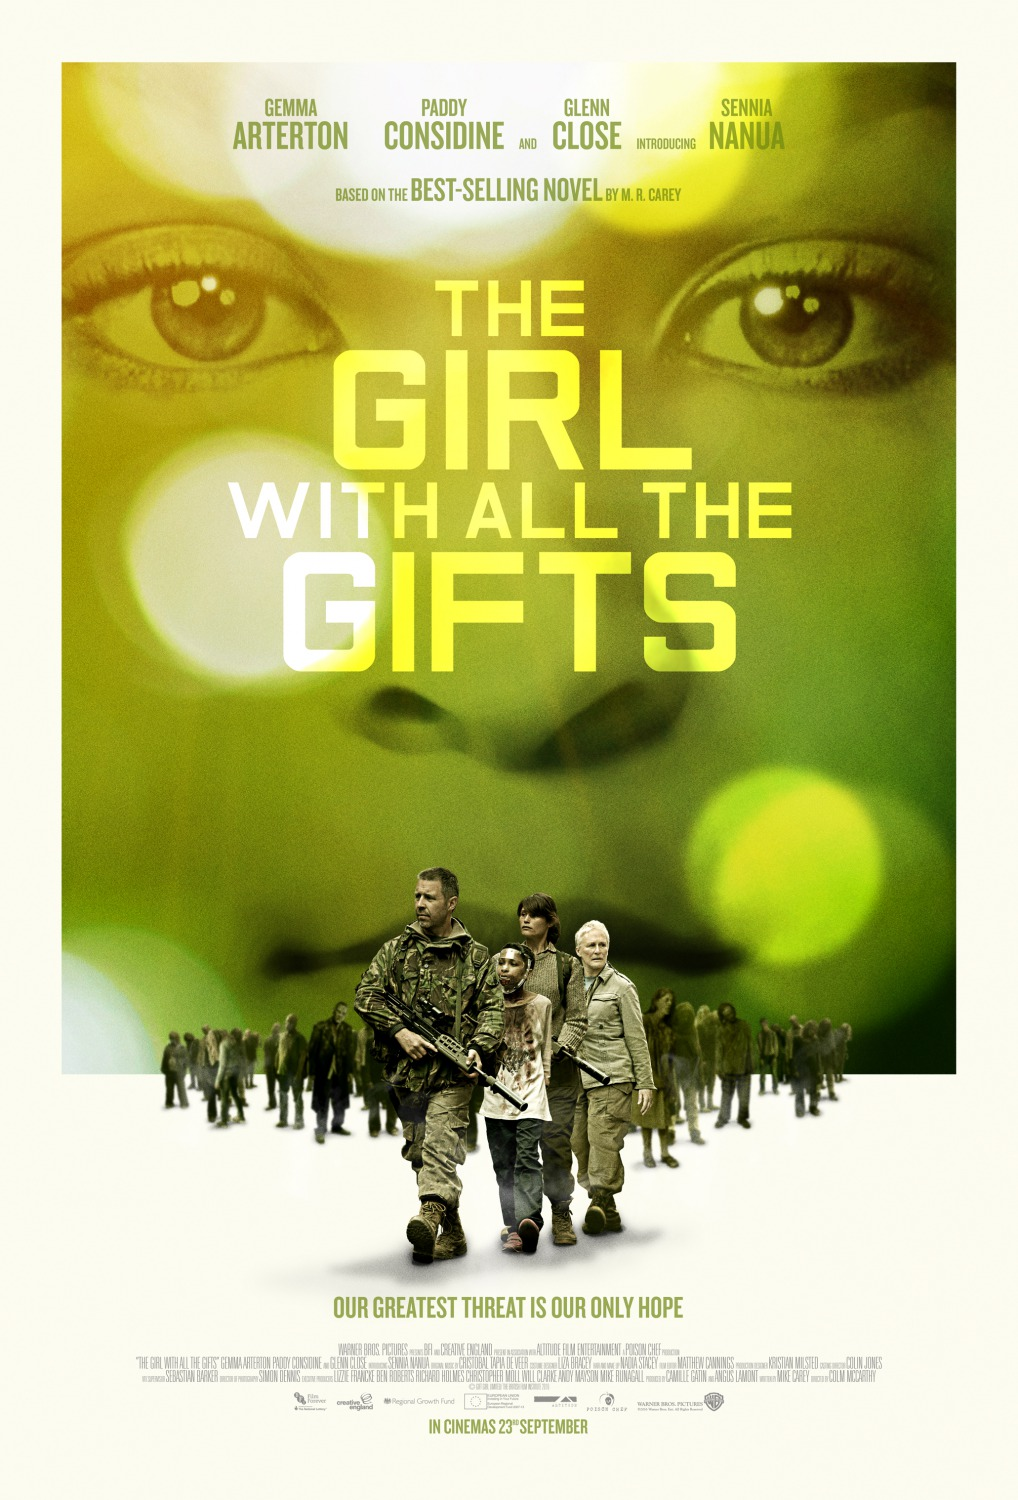 The Girl With All The Gifts film review: bleak but brilliant?